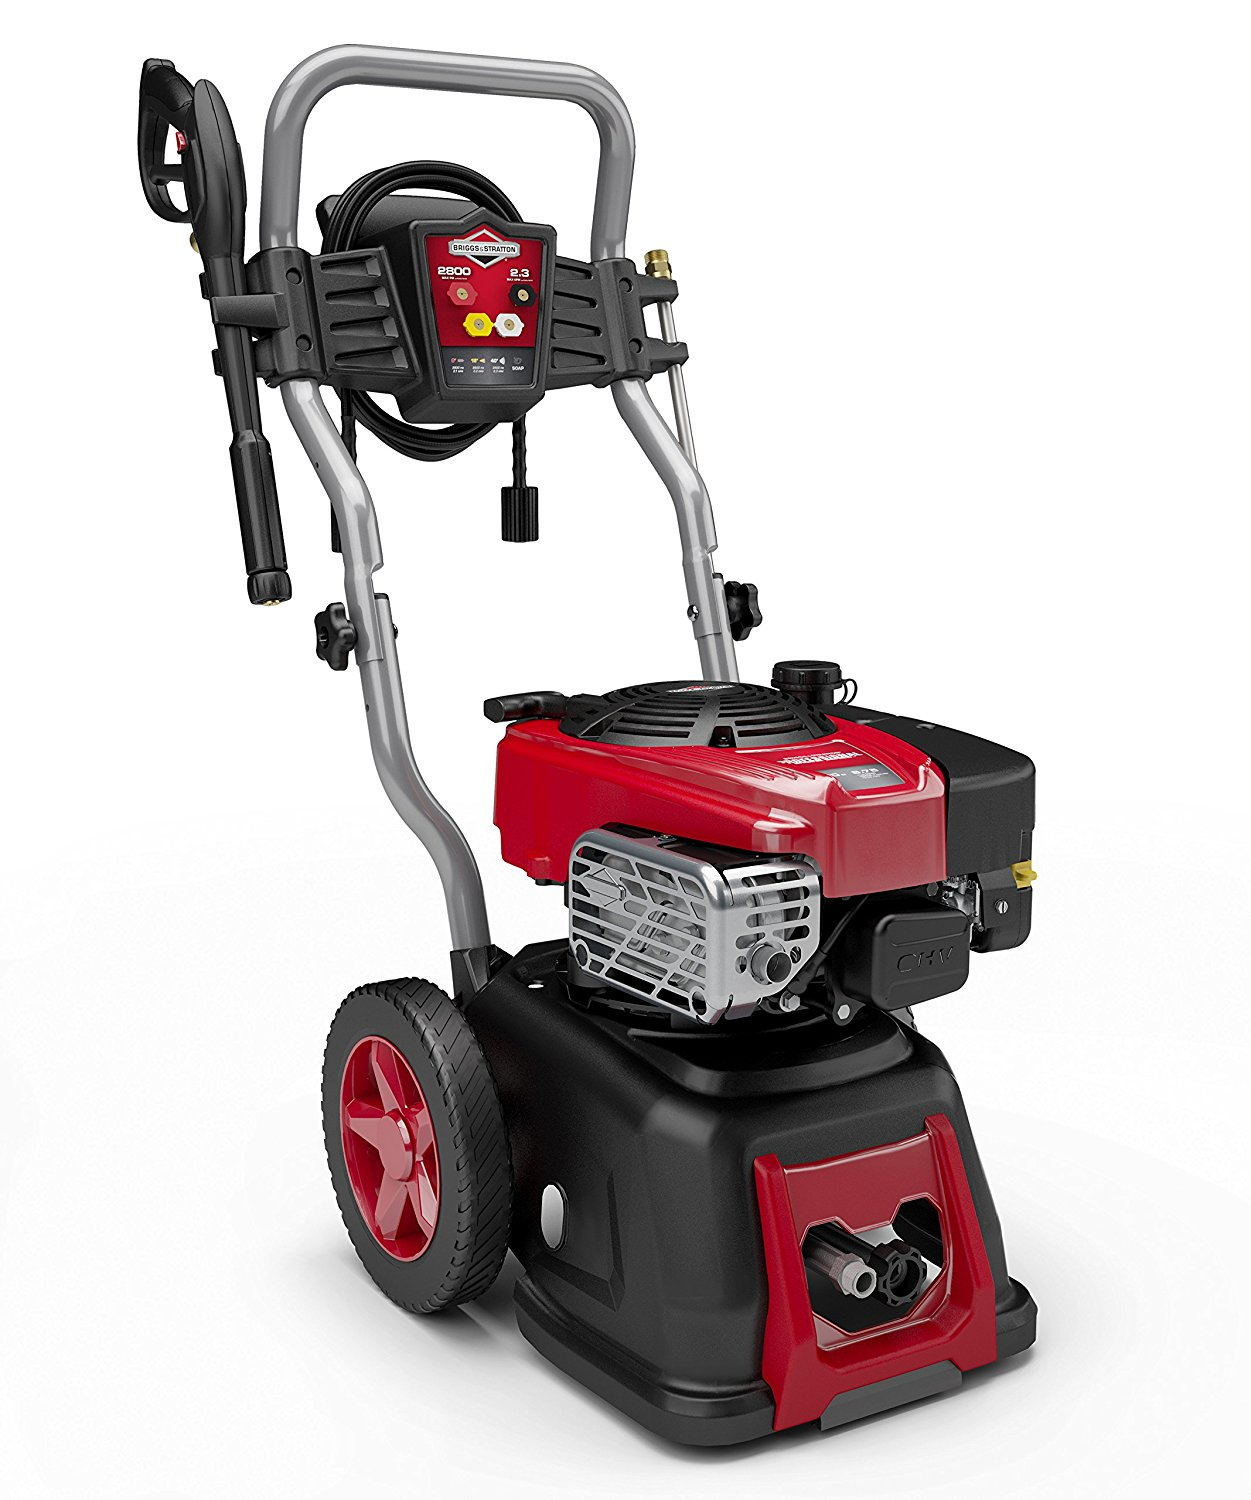 Briggs & Stratton Pressure Washer Reviews and Buying Guide — Top 10 Models Ever